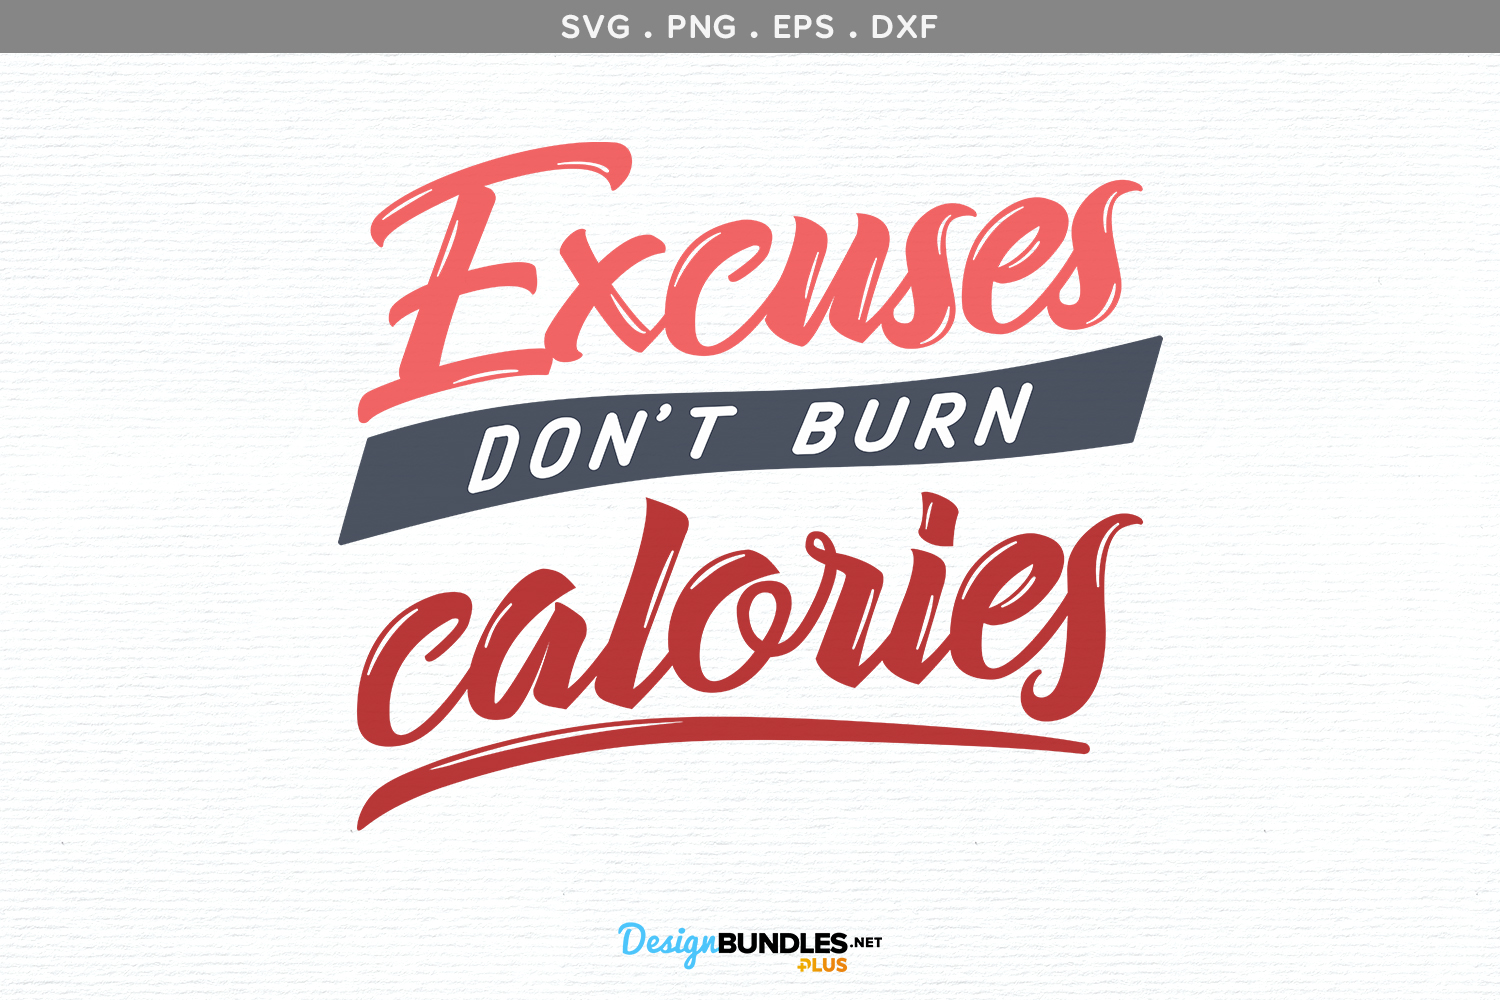 Excuses don't burn calories - svg, printable example image 2